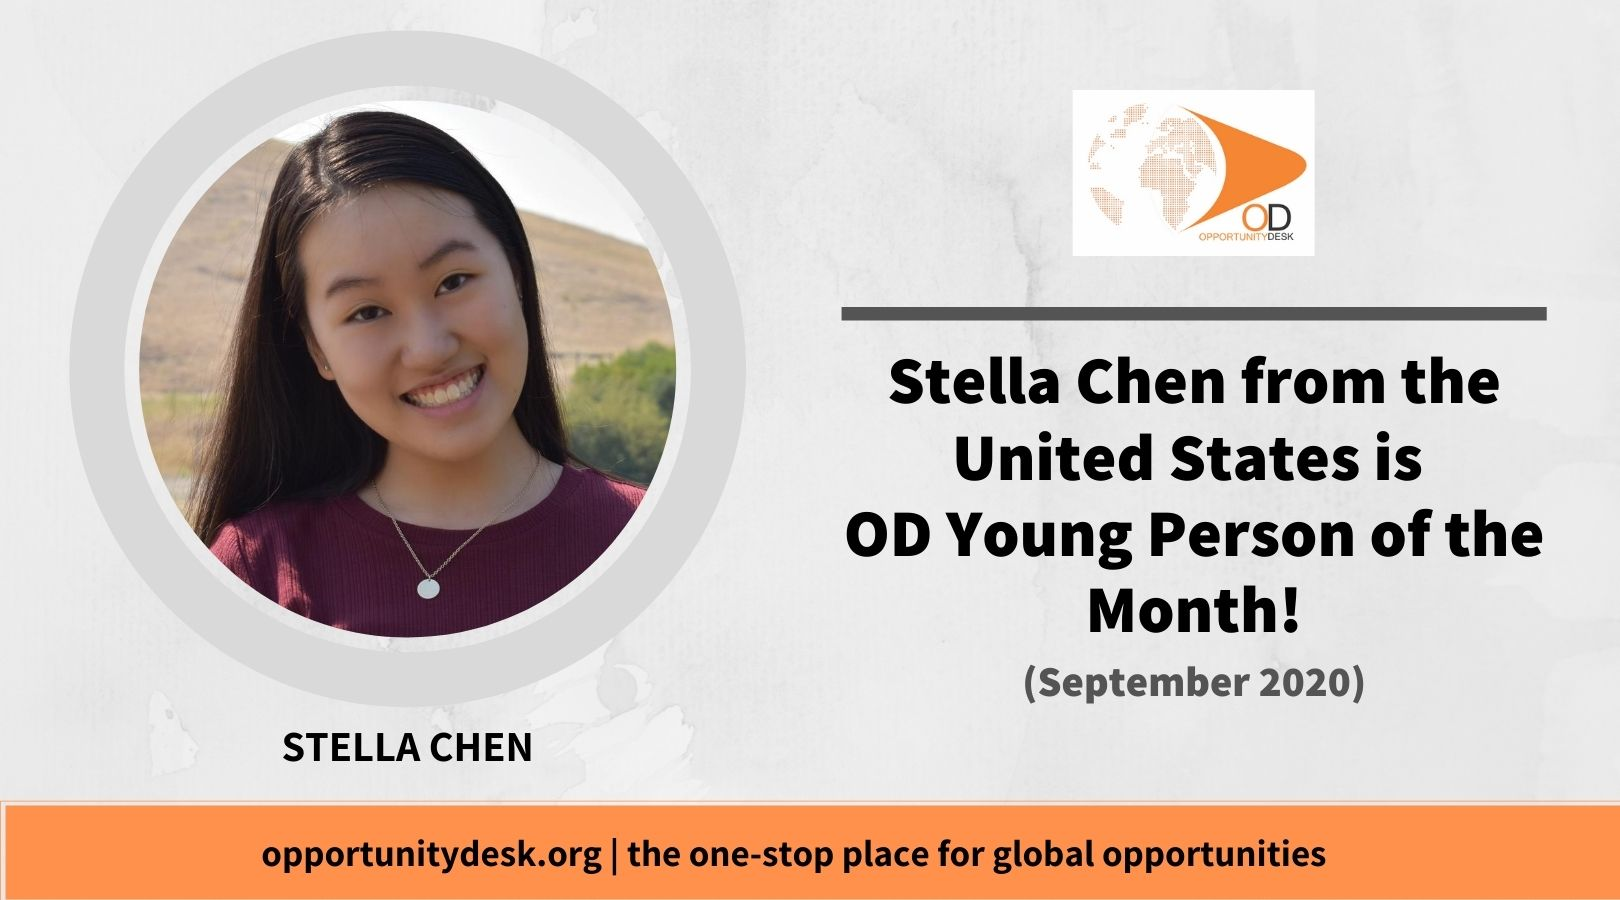 Stella Chen from the United States is OD Young Person of the Month for September 2020!